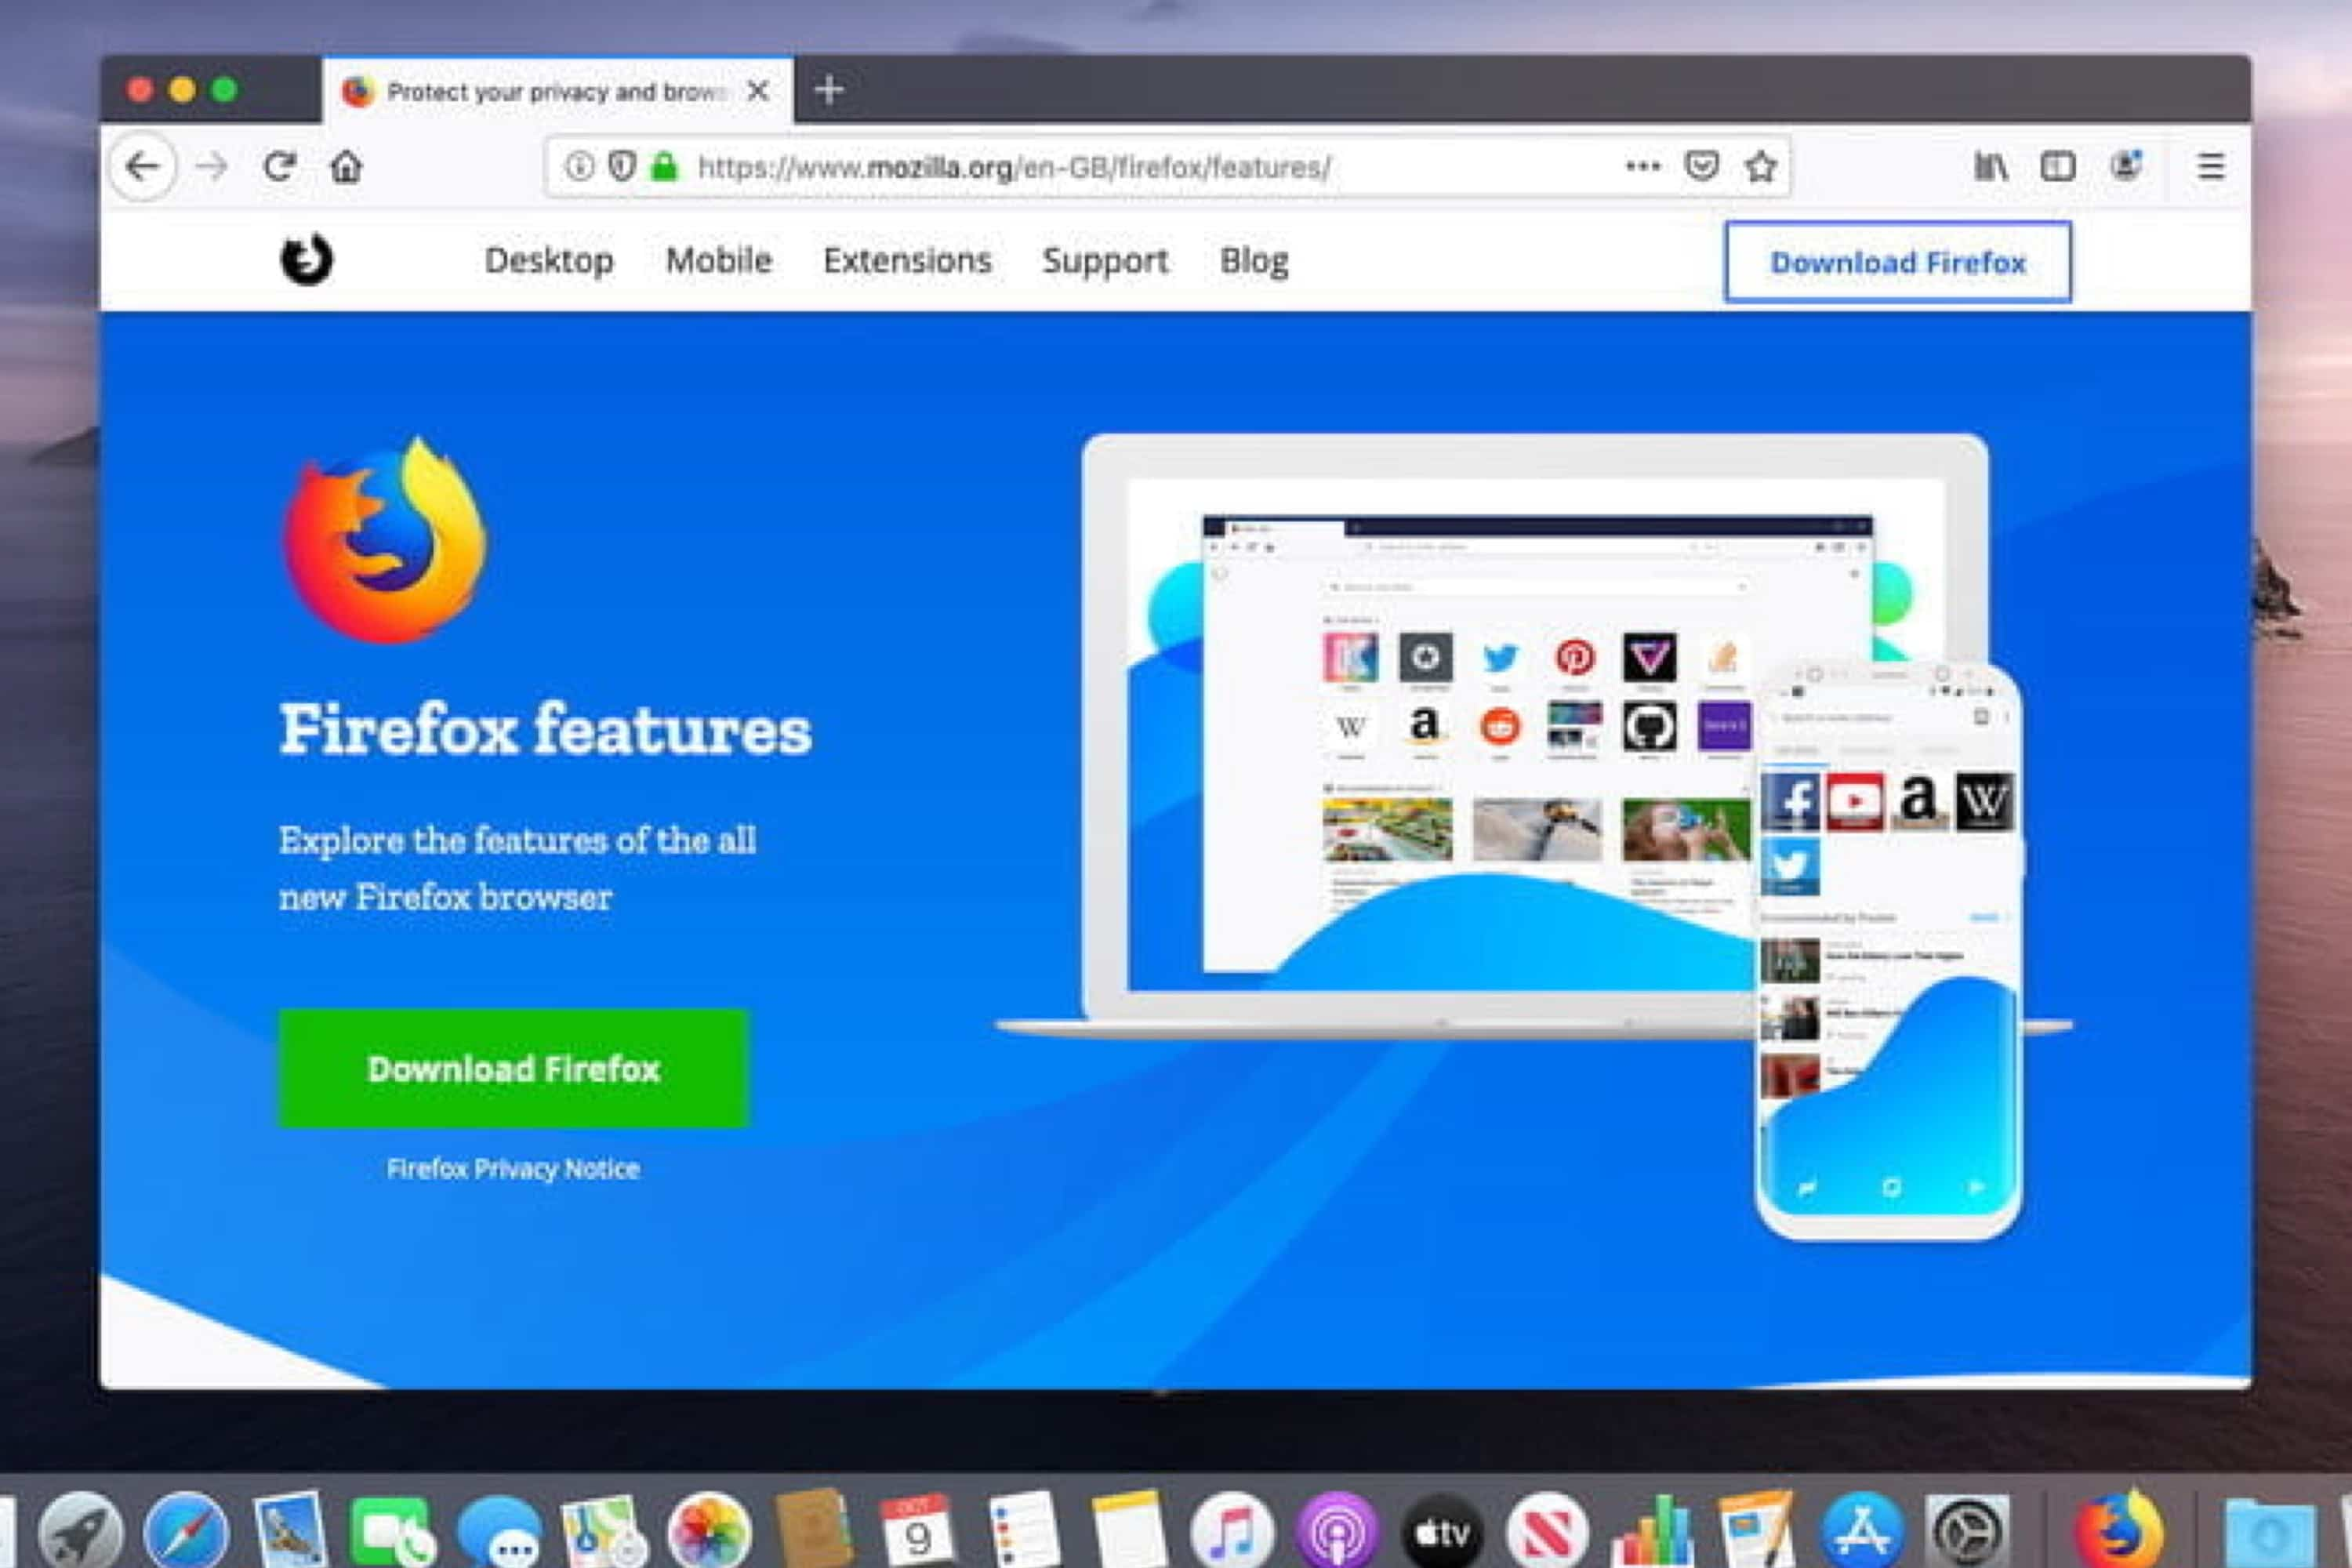 firefox-84-0-update-provides-native-silicon-m1-support-20201215-1